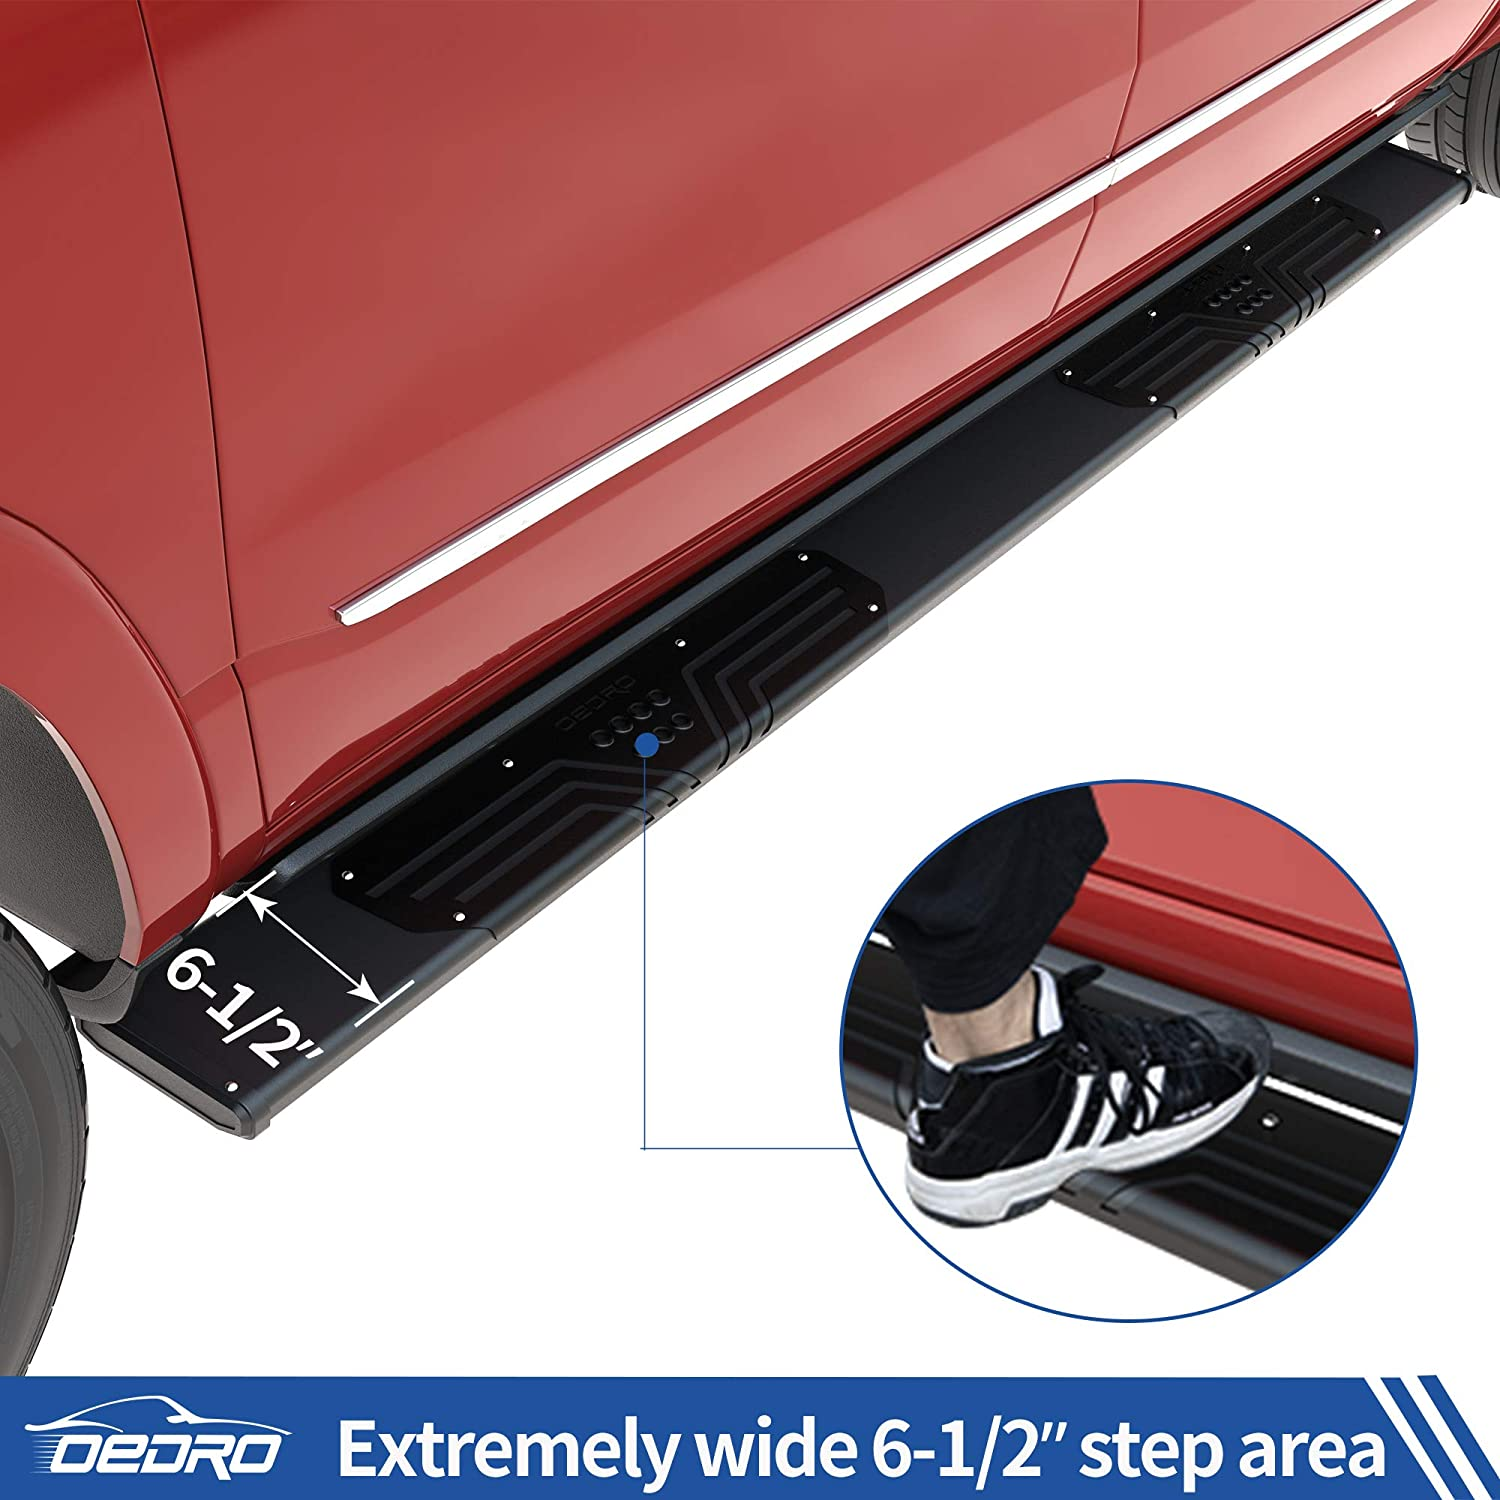 Aluminum Side Steps Nerf Bars for More Fuel Efficiency Black Textured oEdRo 6.5inch Running Boards Compatible with 2009-2018 Dodge Ram 1500 Quad Cab 2019-2021 Ram 1500 Classic